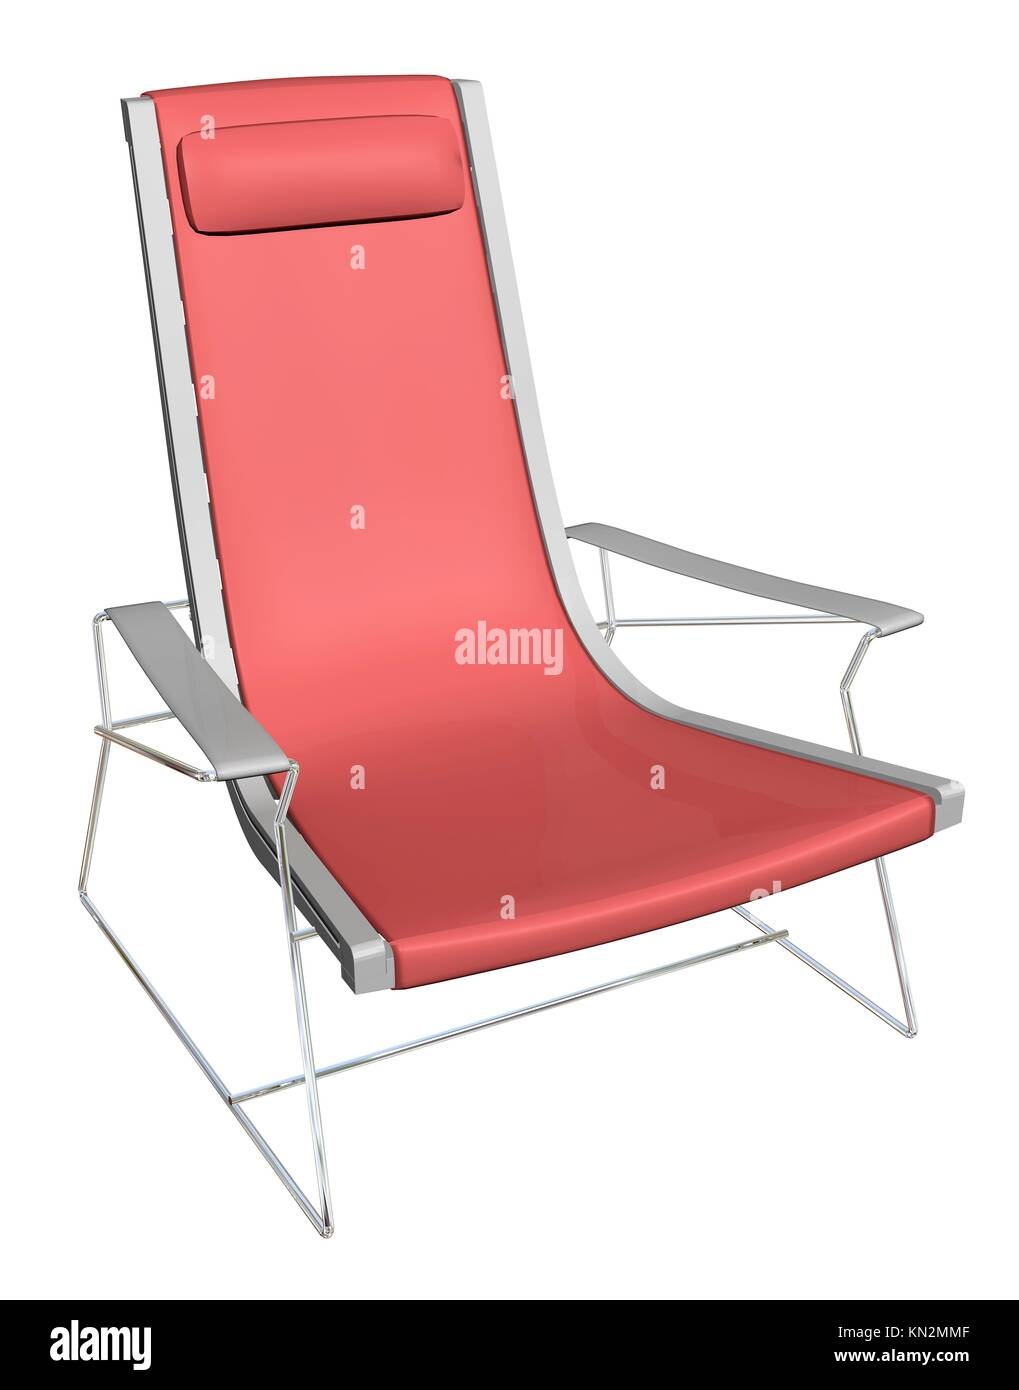 Fantastic Plastic Lounge Chair Red Metal Frame With Headrest Pabps2019 Chair Design Images Pabps2019Com